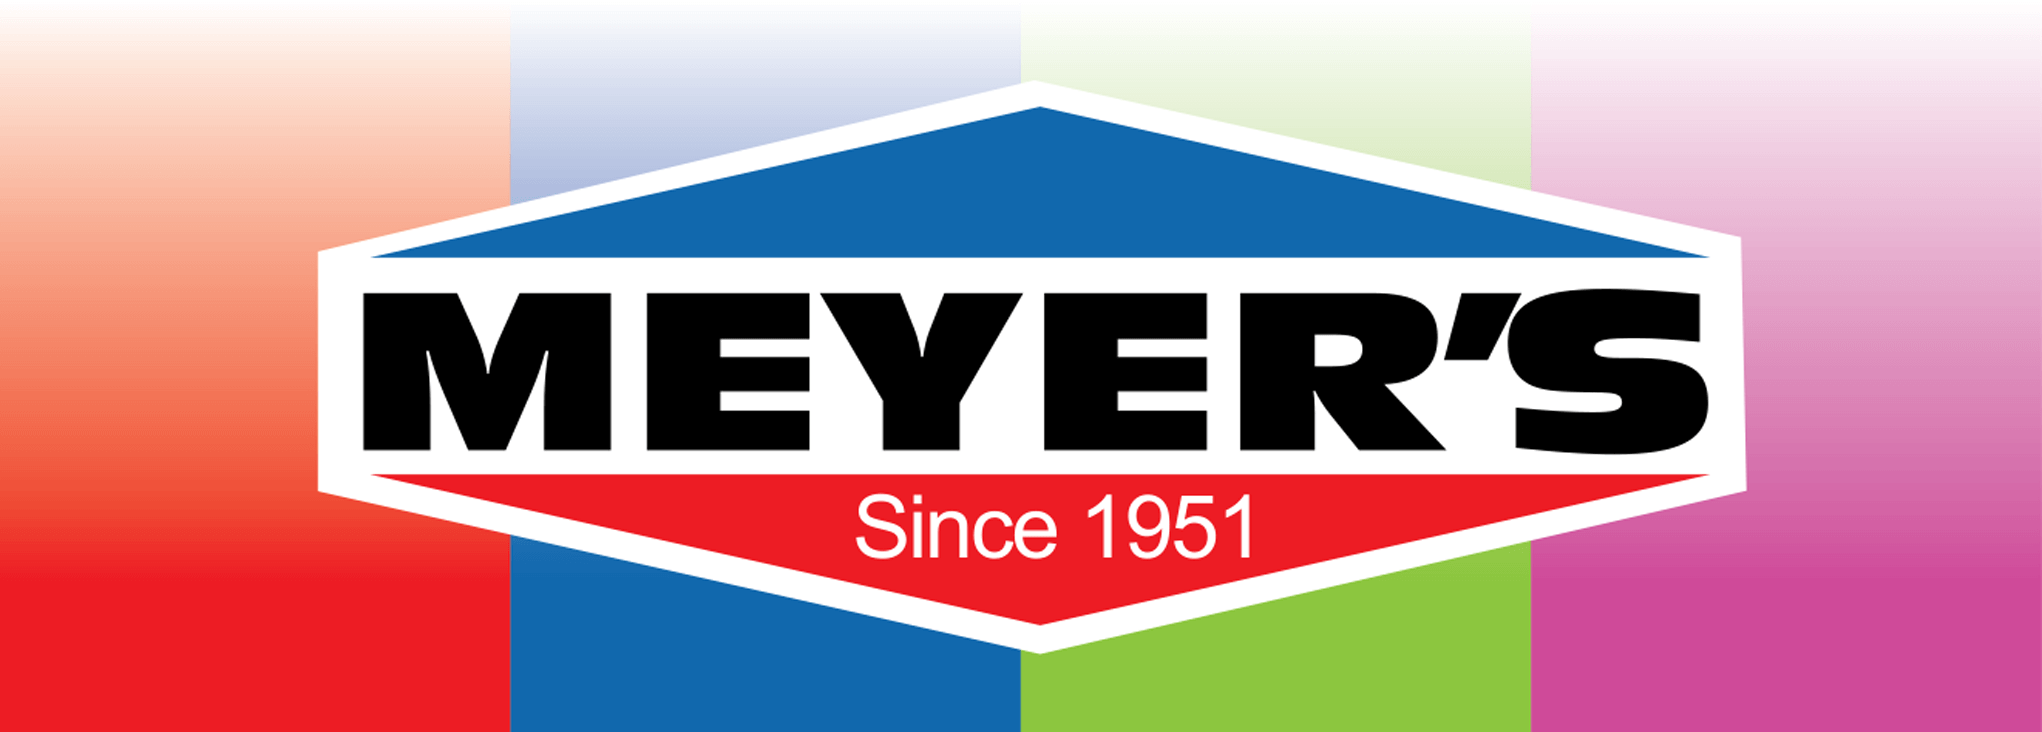 Meyers Companies, Inc.